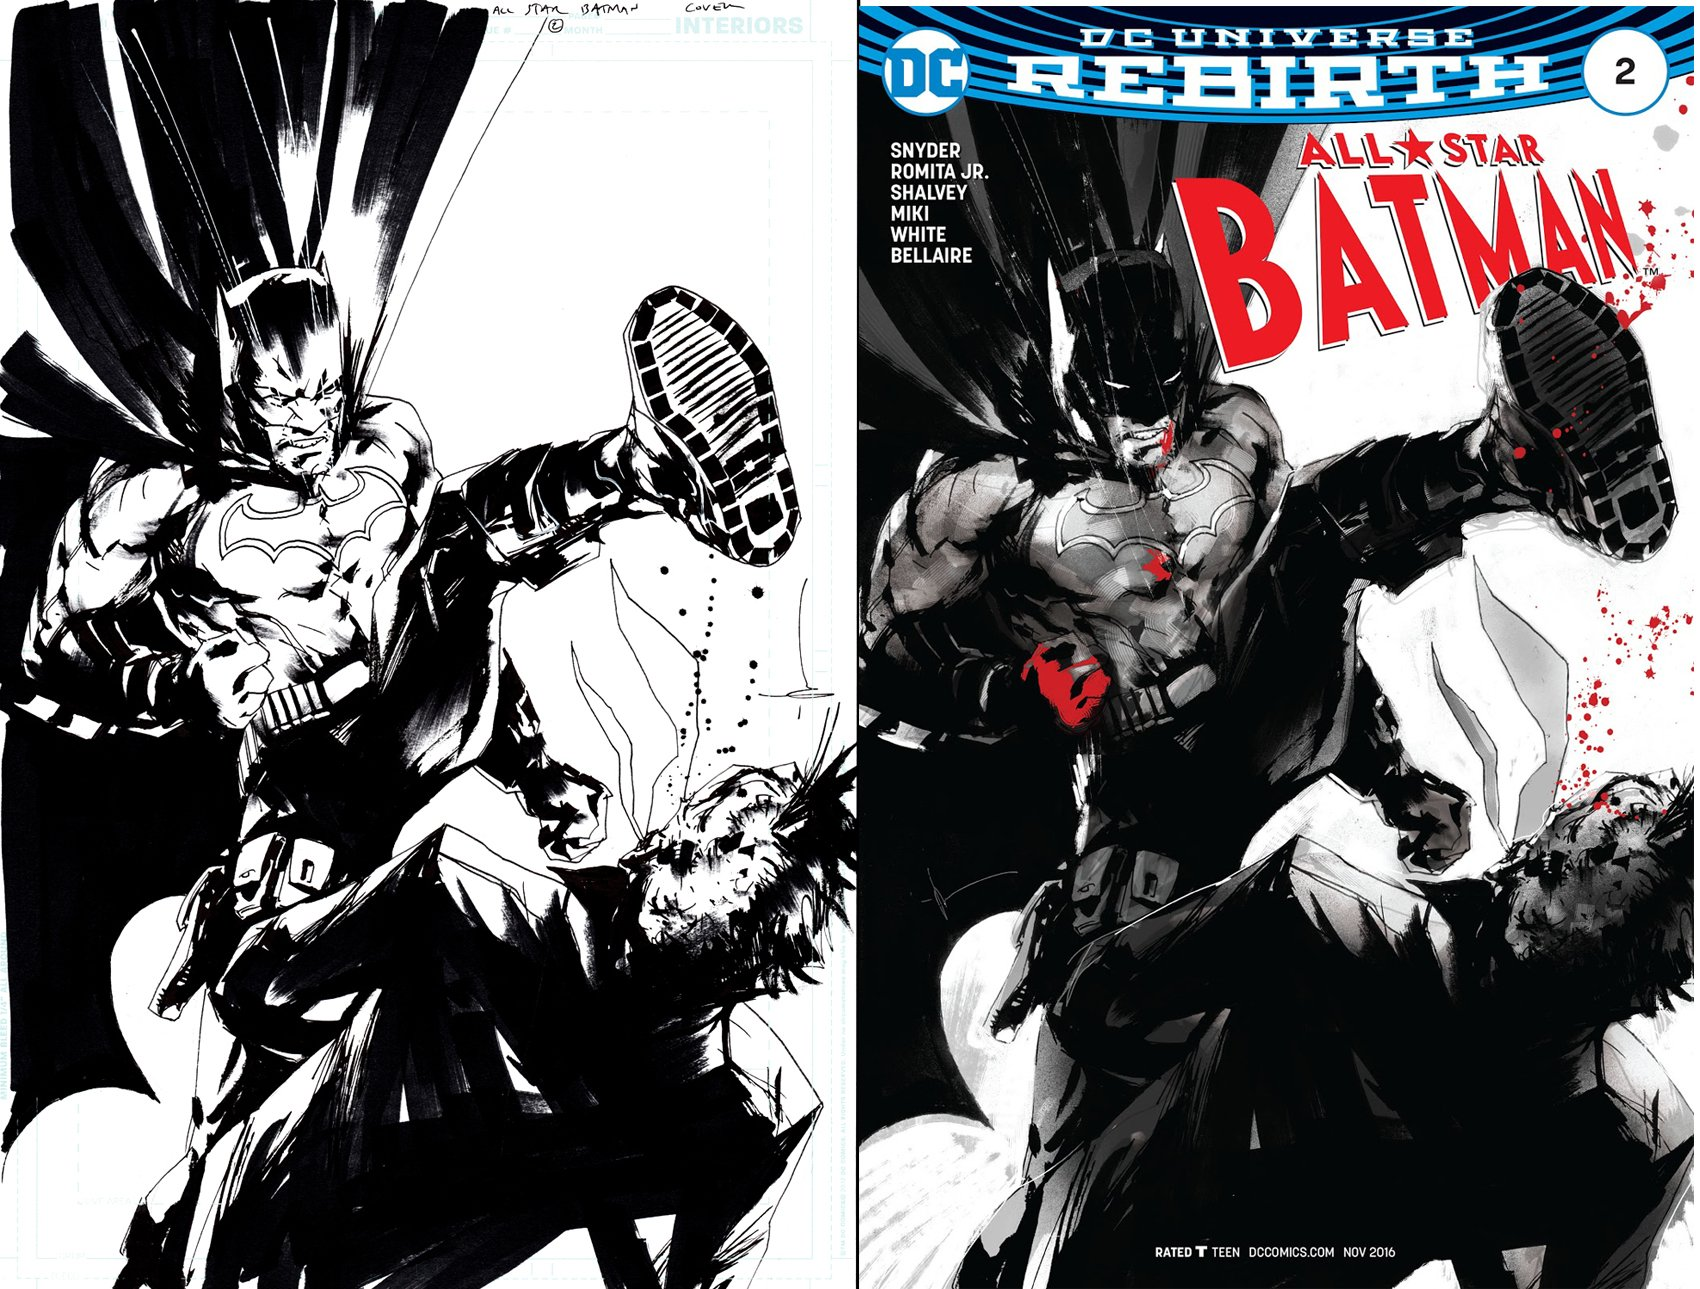 All Star Batman #2 Cover (BATMAN KICKING TWO-FACE ON THE EVIL SIDE OF HIS FACE....LOL) 2016